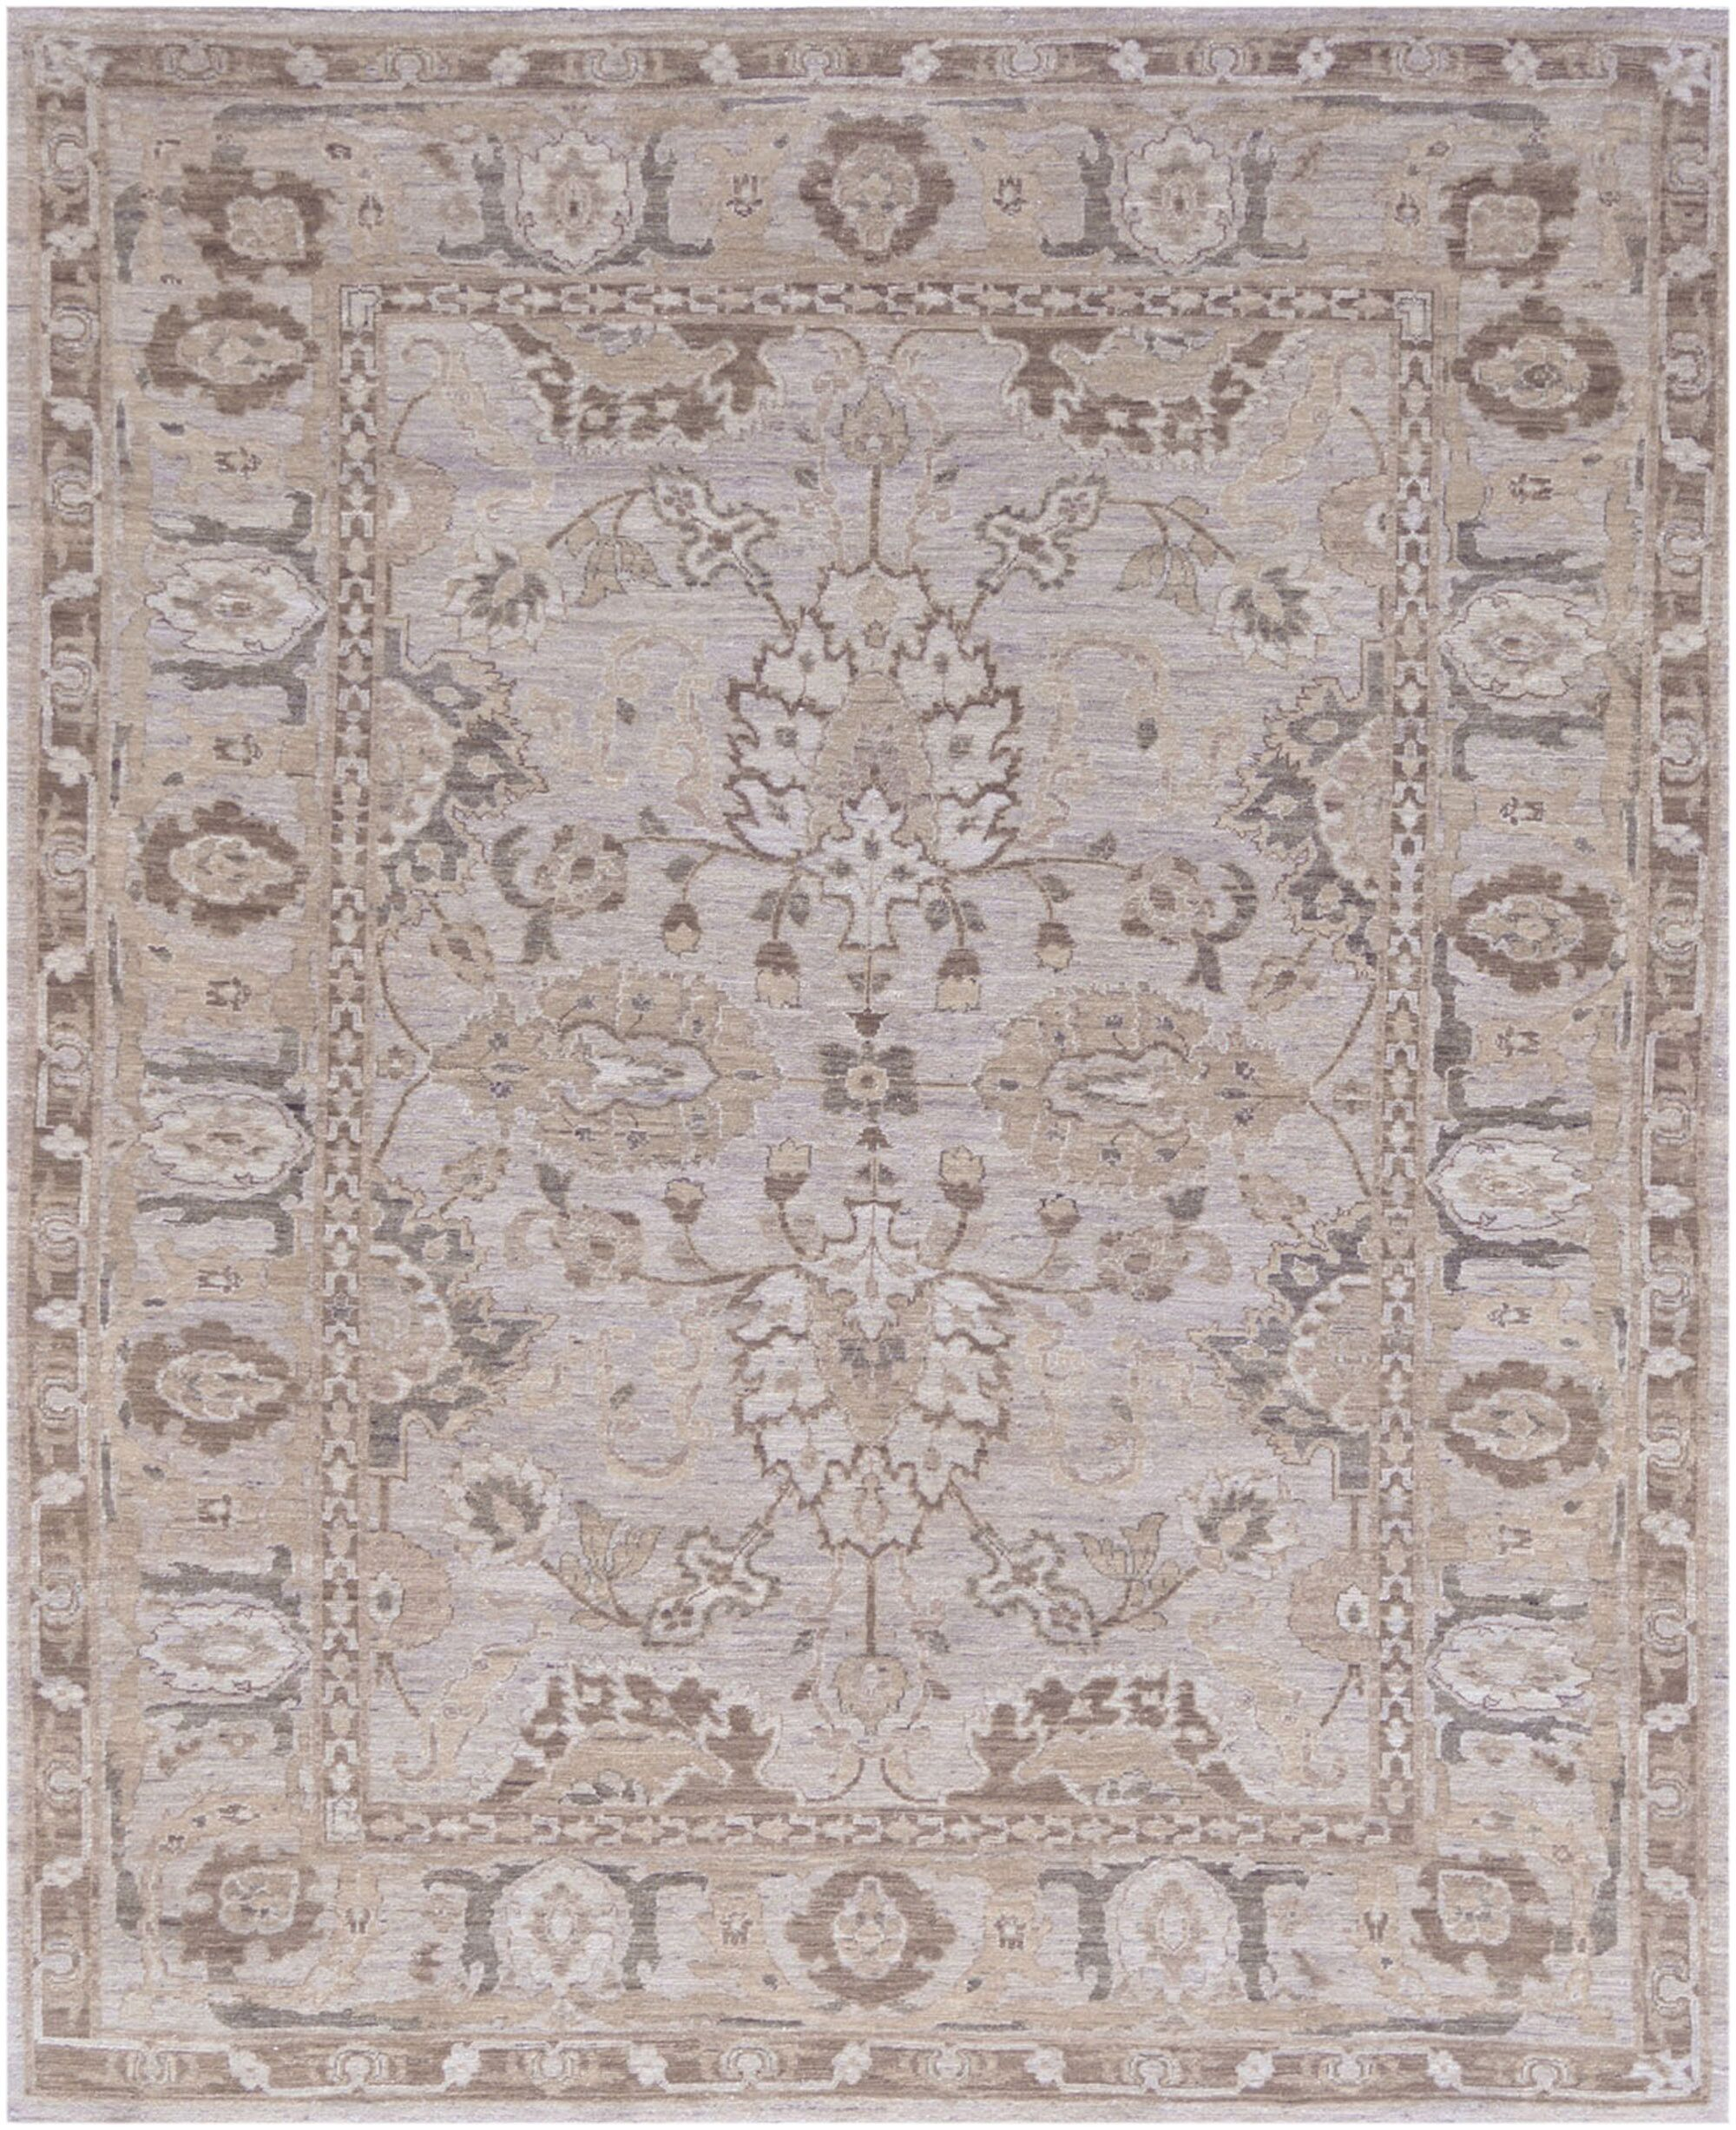 One-of-a-Kind Superb Quality Handwoven Wool Beige Indoor Area Rug